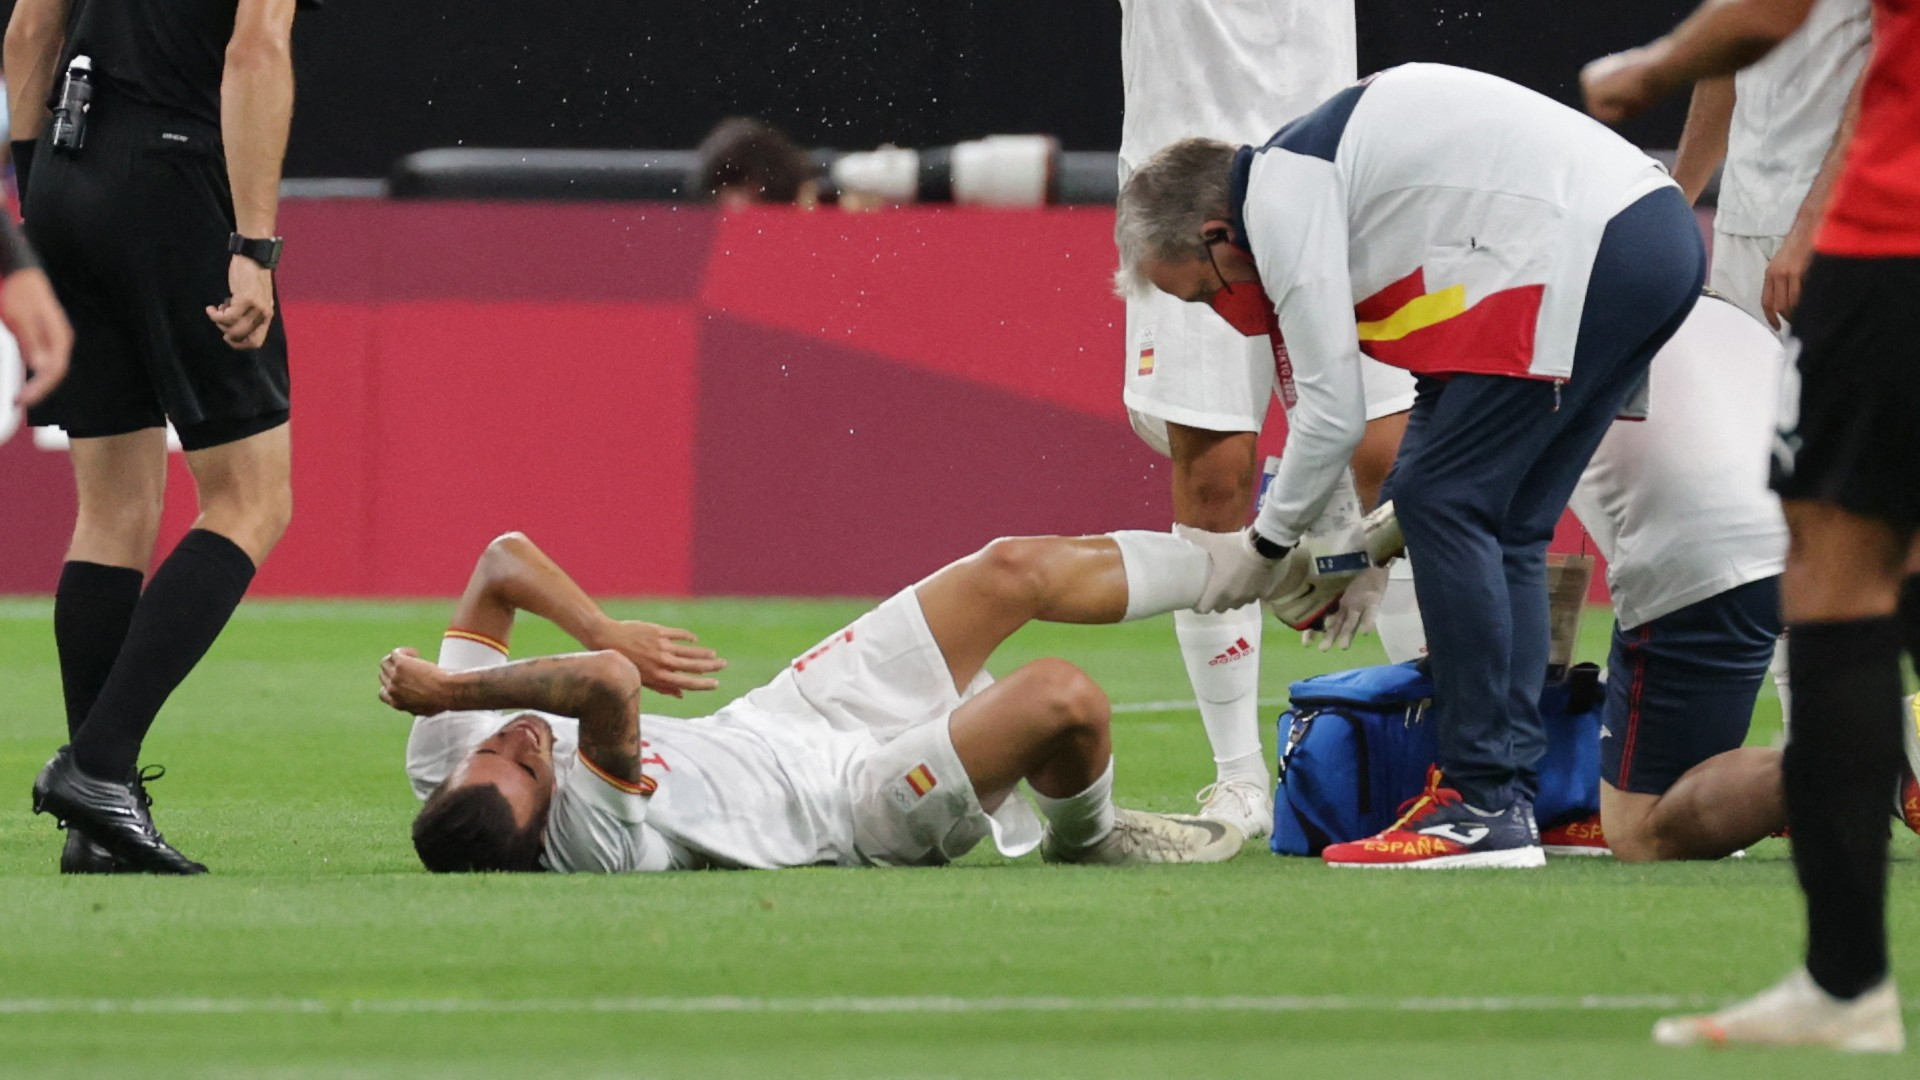 Injury worry for Real Madrid midfielder Ceballos as he limps out of Spain clash with Egypt at Olympics